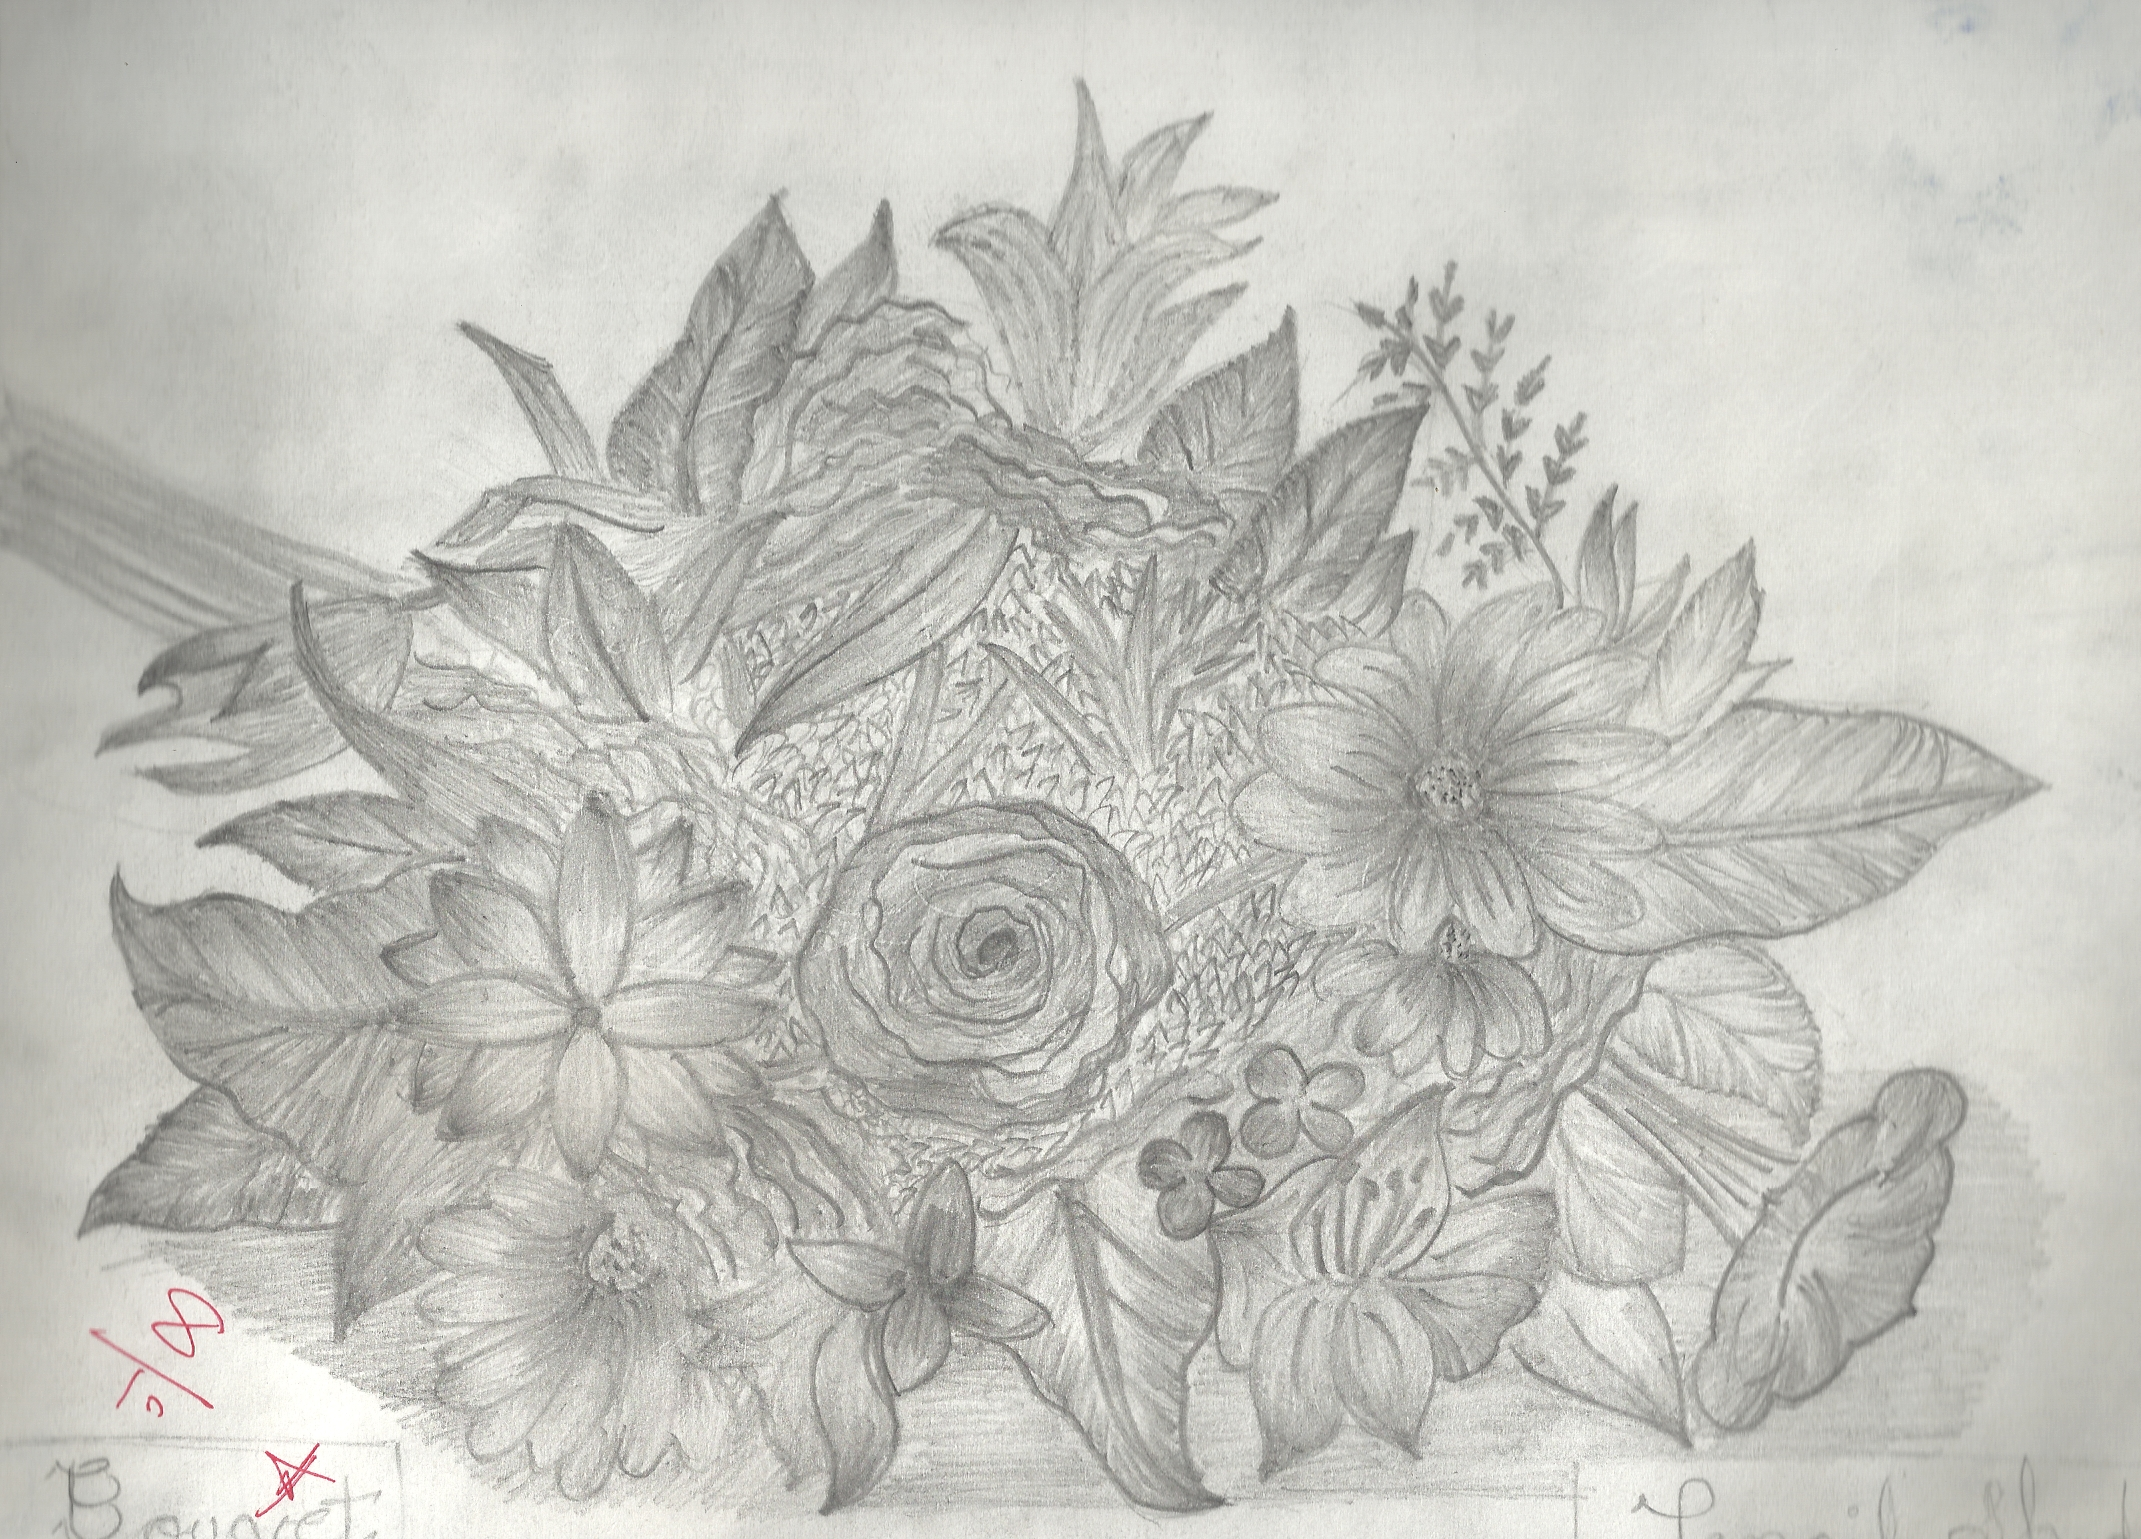 Pencil Shading Drawing Of Flowers Pencildrawing2019